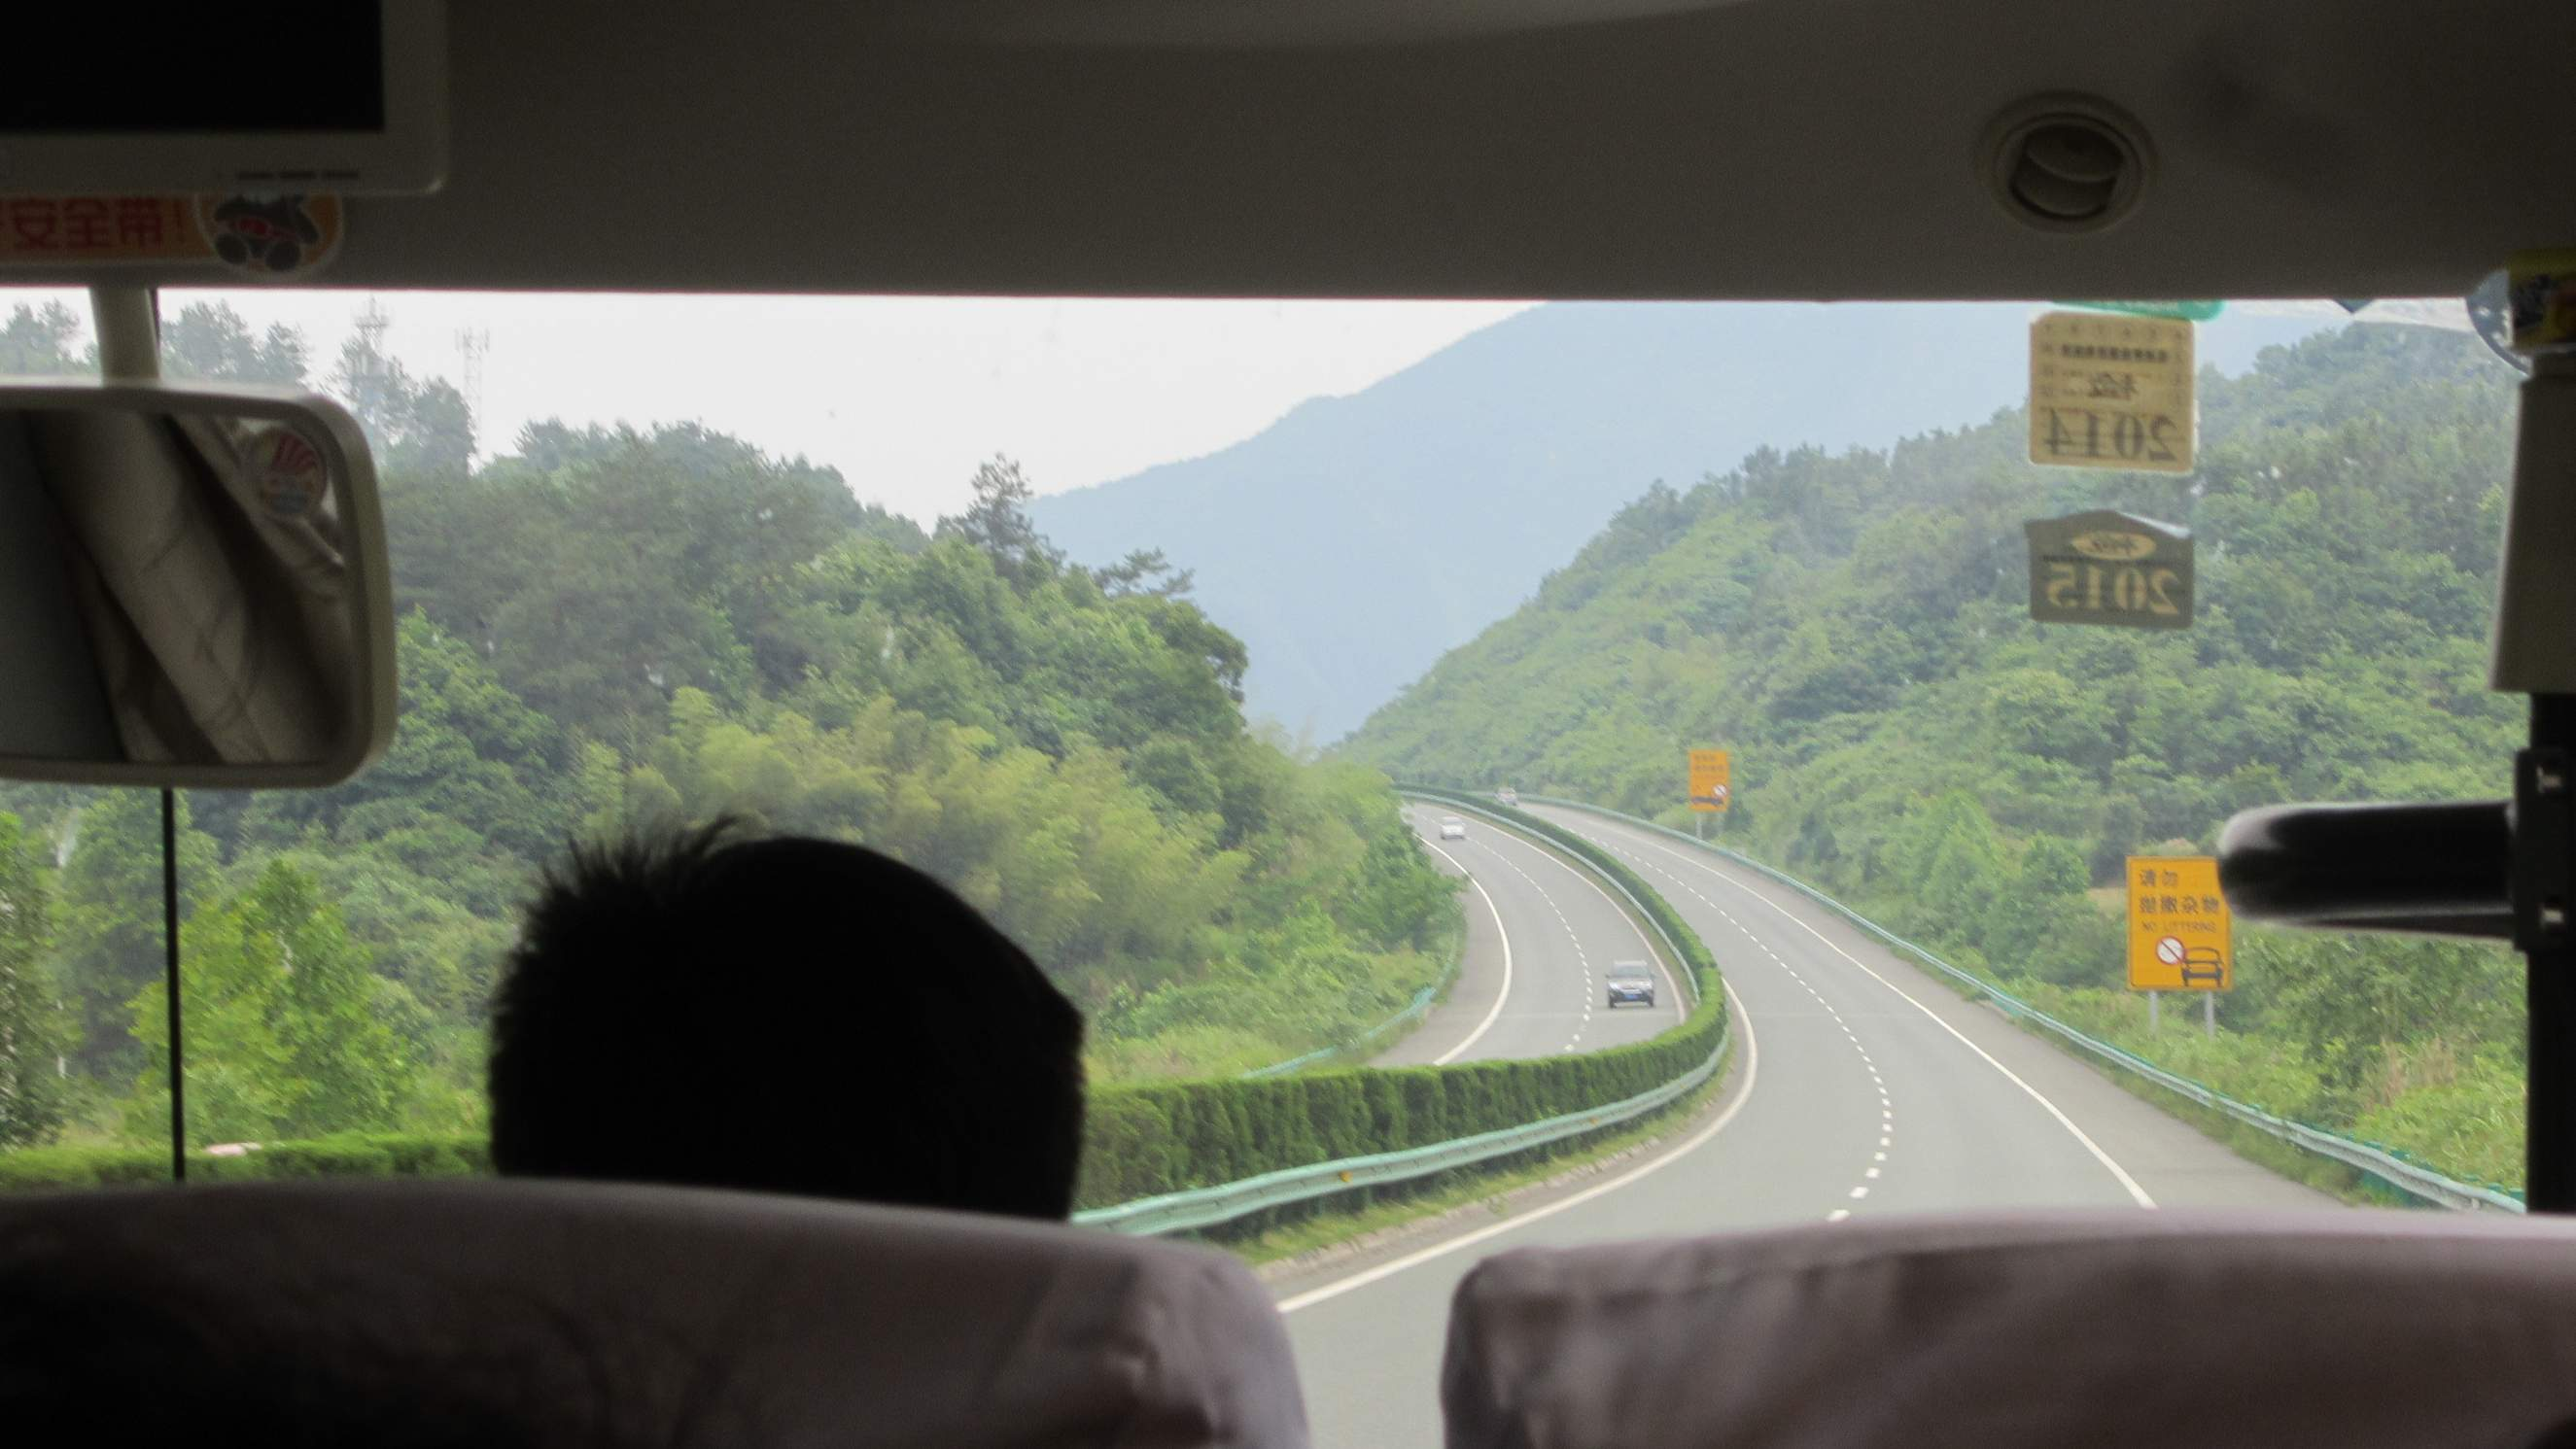 This was the expressway from the Huangshan Mountains. All highways in eastern China seemed super well maintained and landscaped.